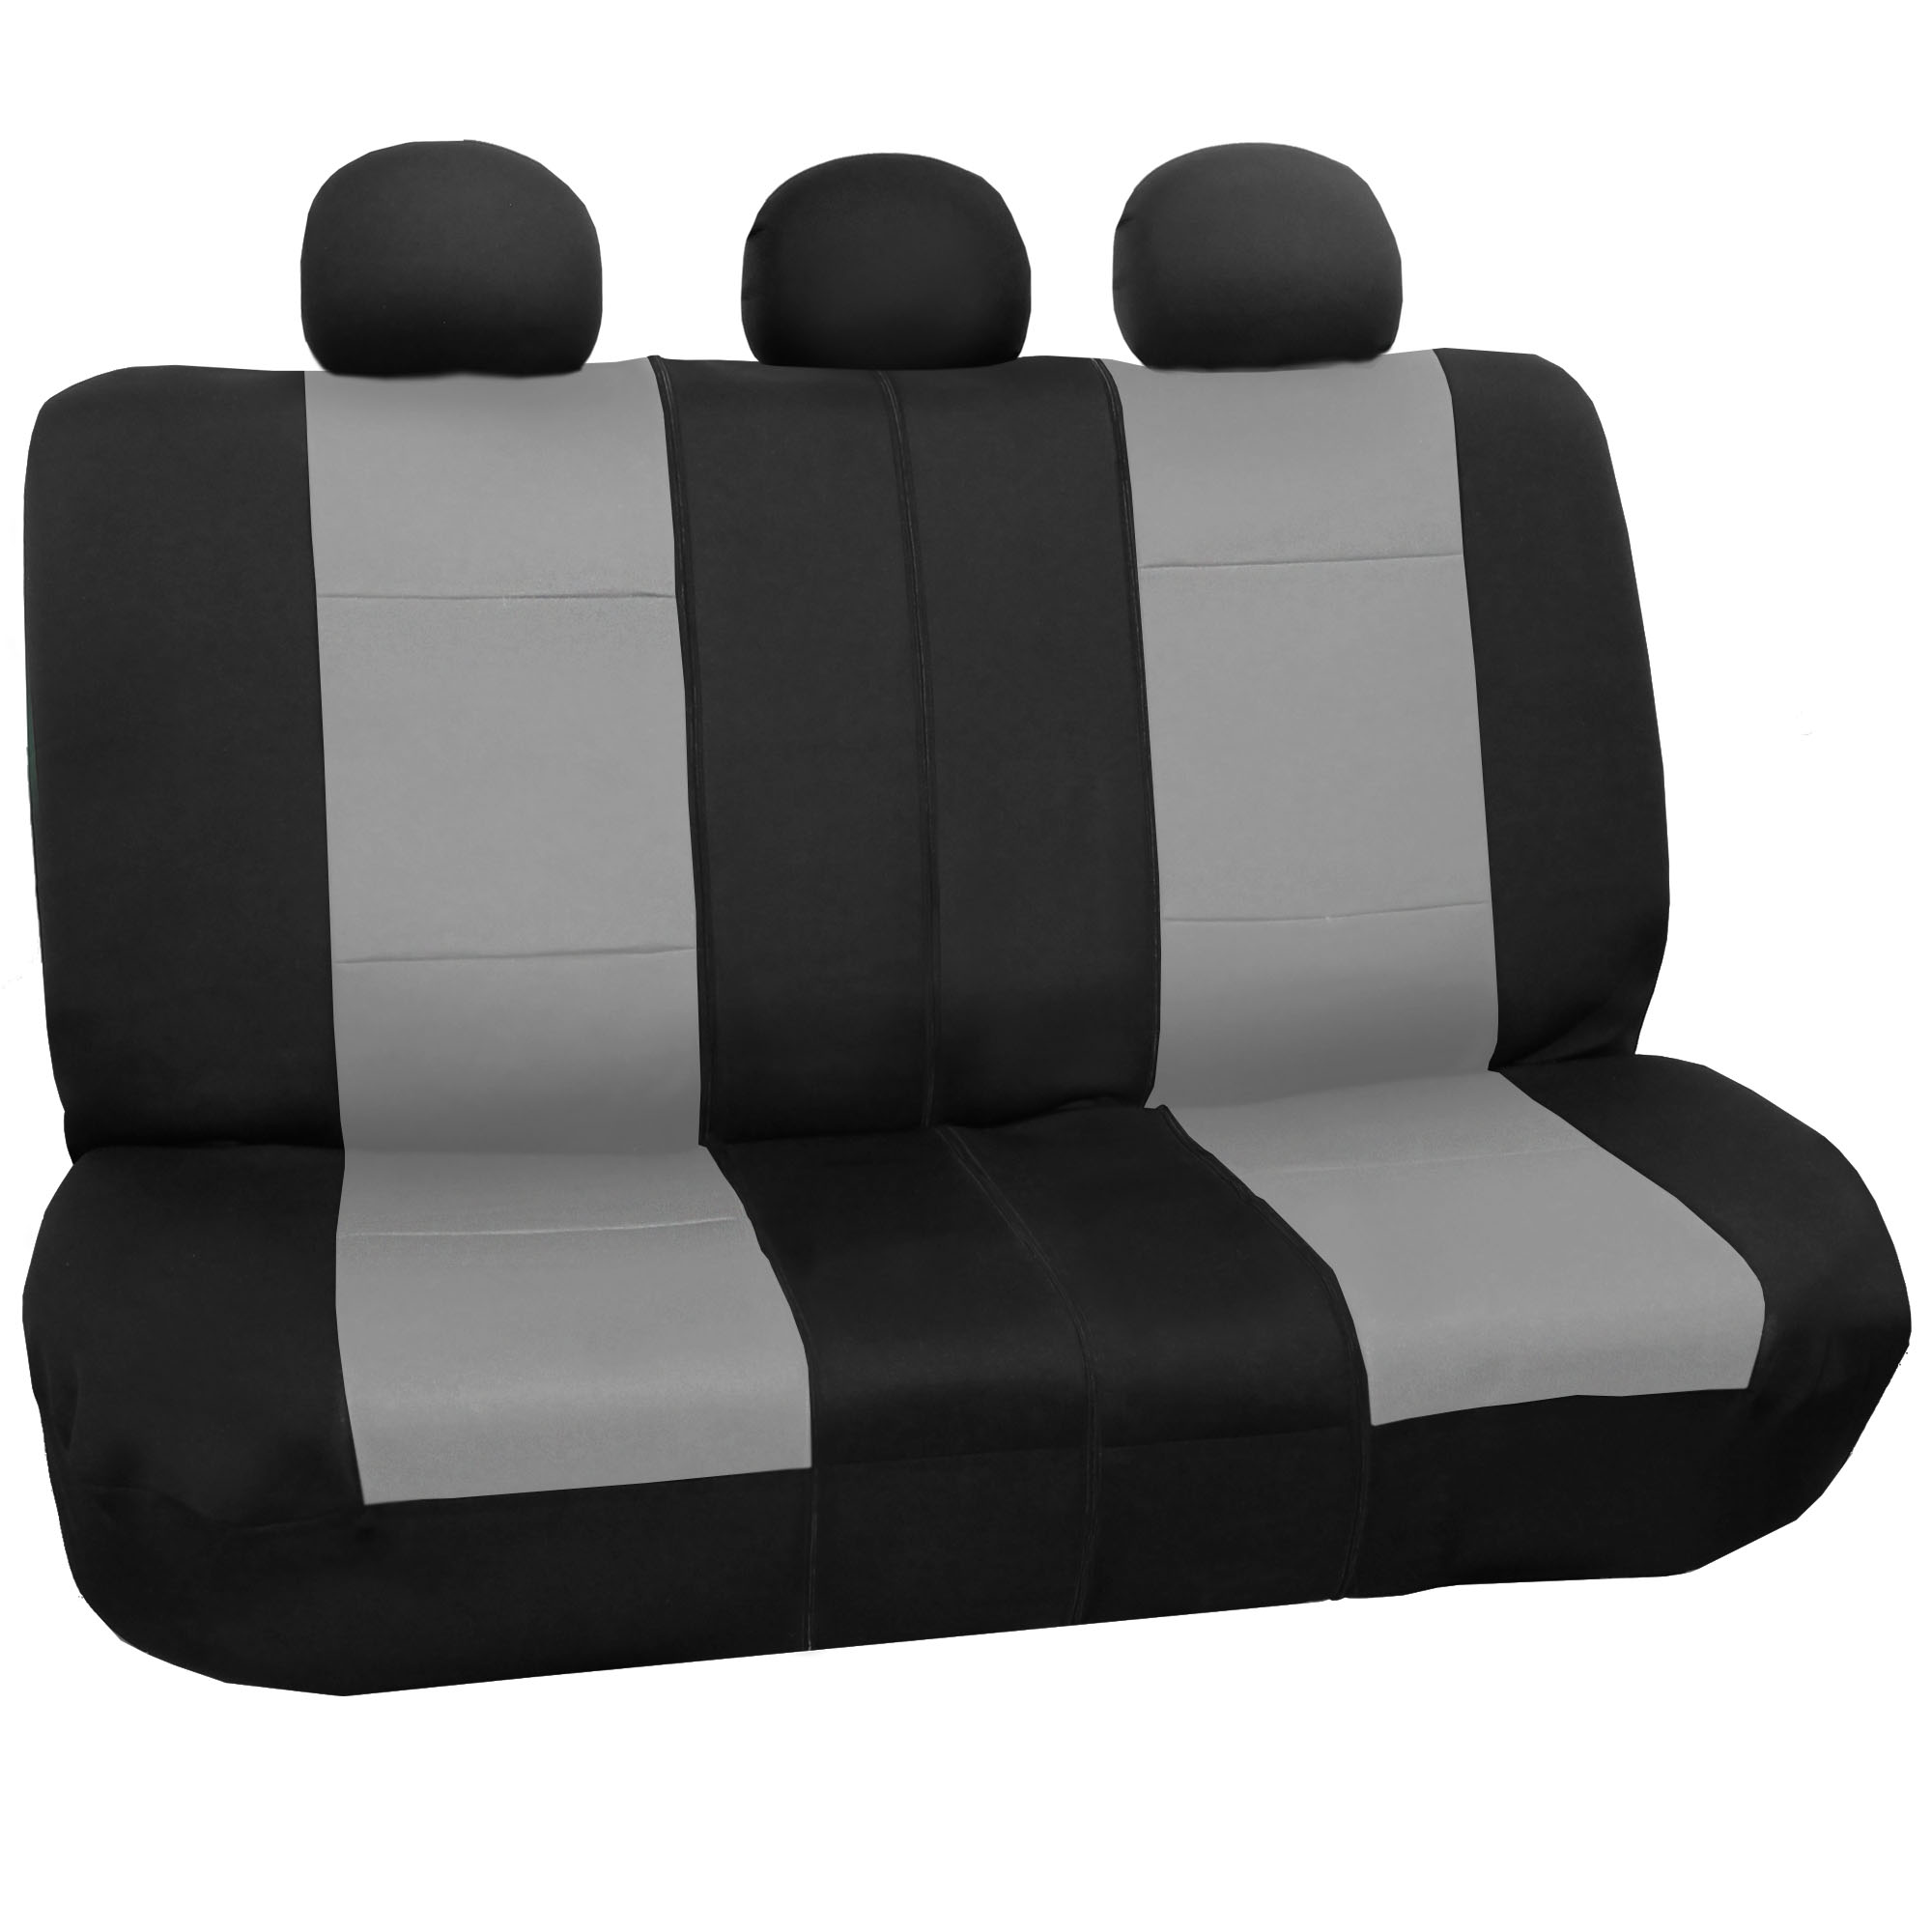 Car-Seat-Cover-Neoprene-Waterproof-Pet-Proof-Full-Set-Cover-With-Dash-Pad thumbnail 39